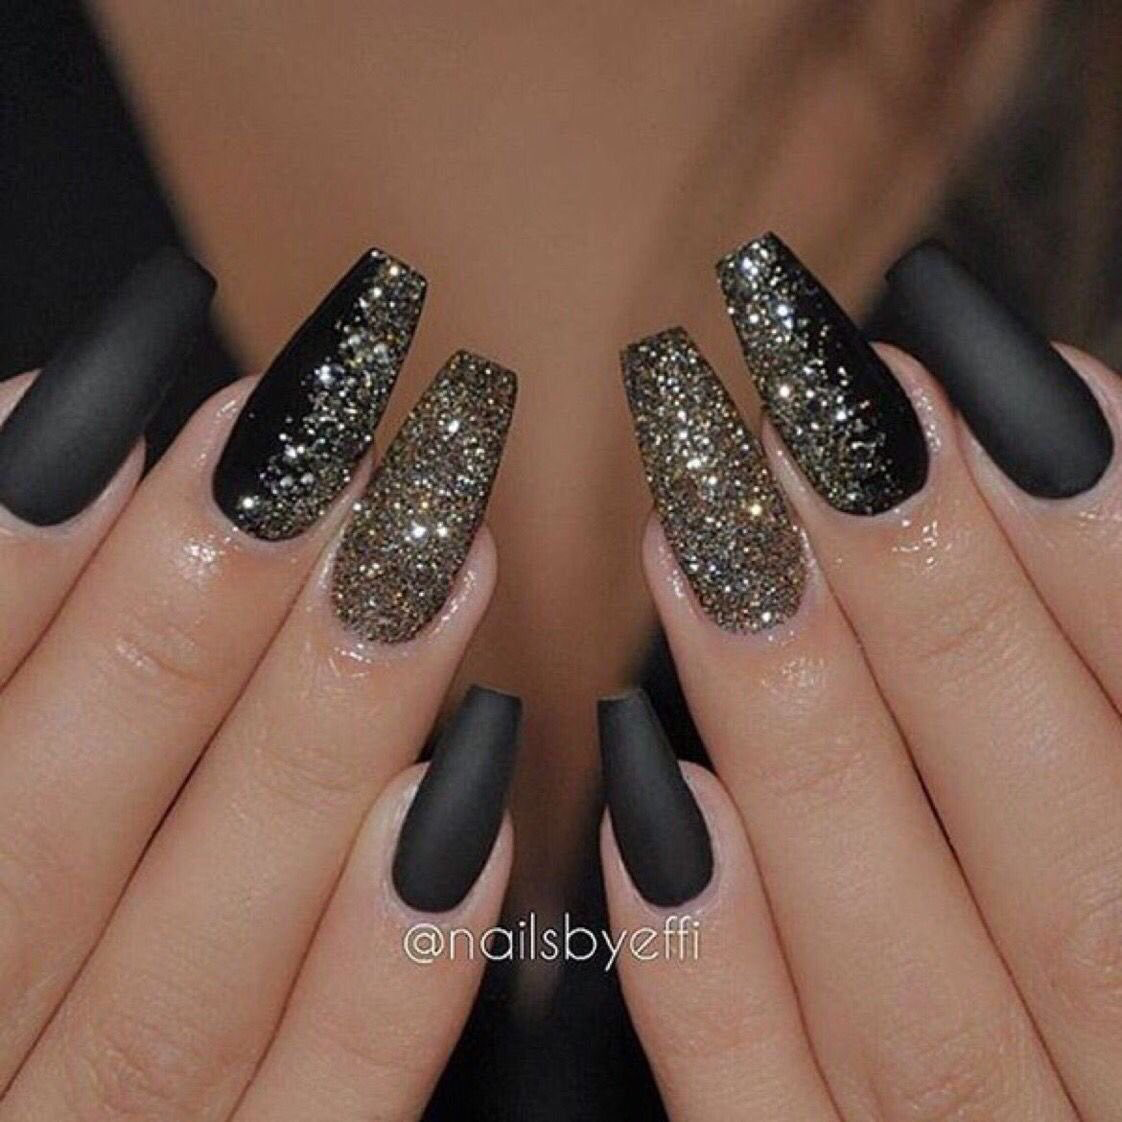 Pin by alfrea4772 on Make up and nails and hair | Pinterest | Makeup